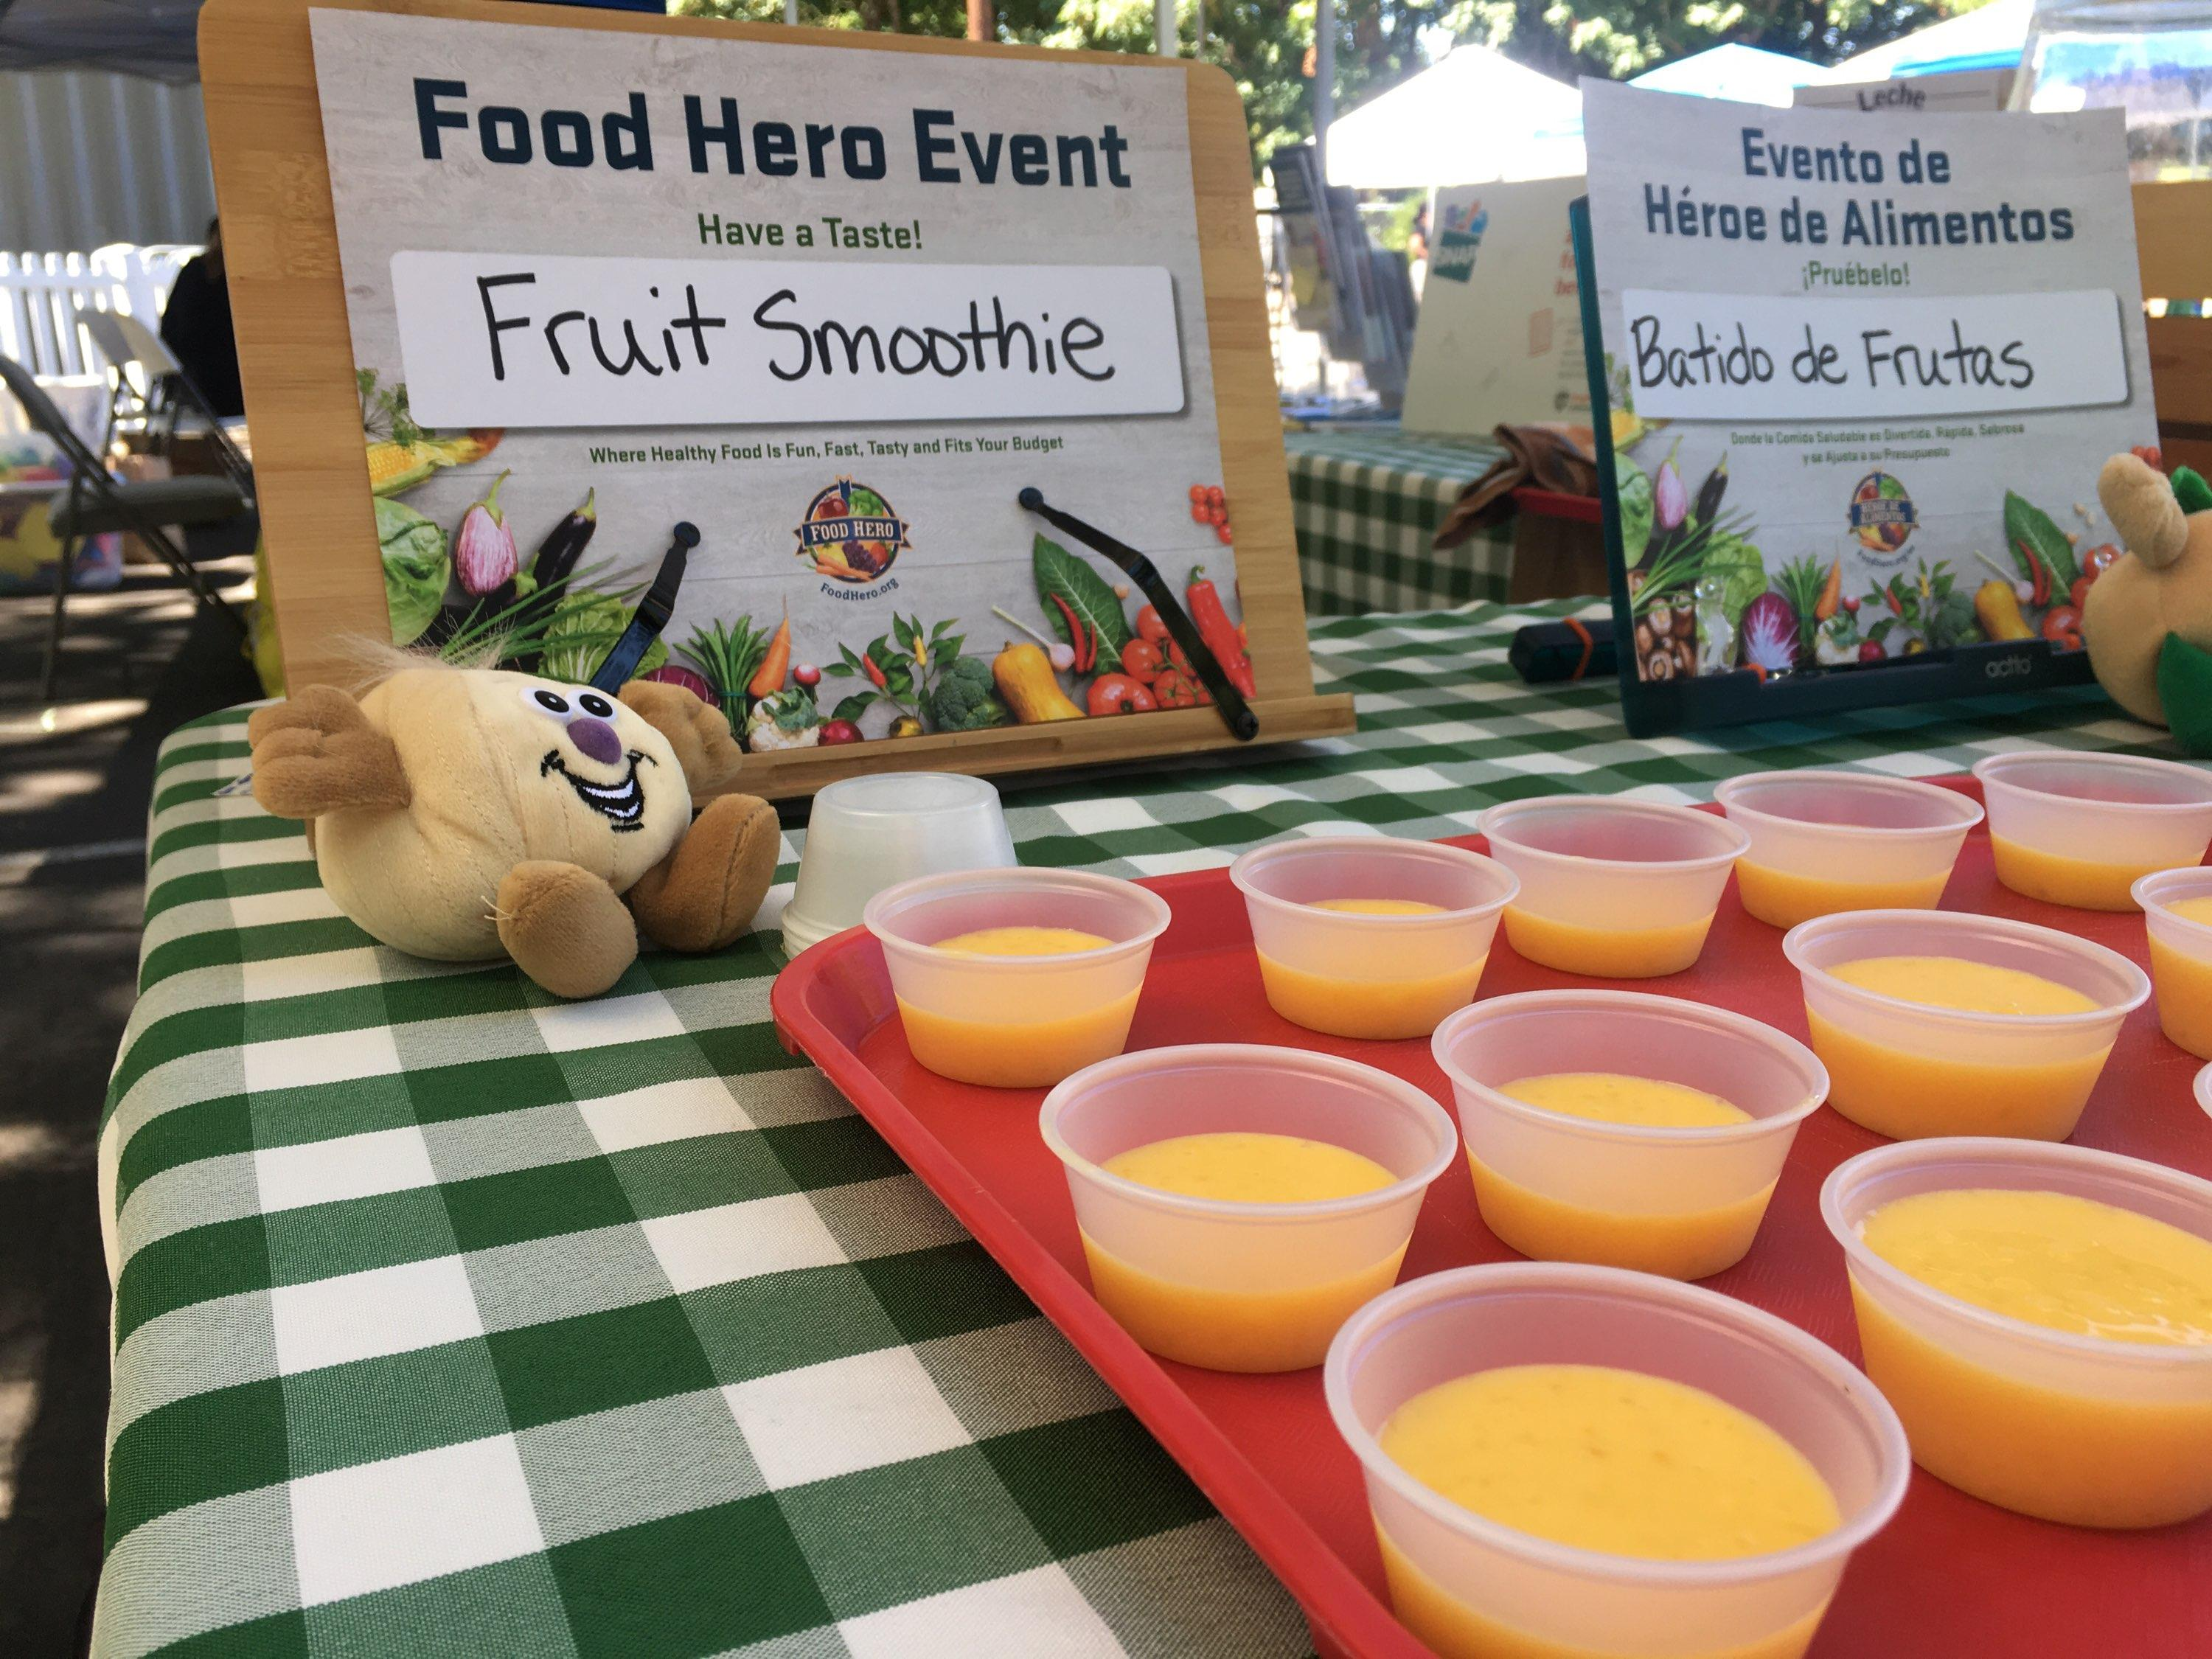 Fruit Smoothie Food Hero recipe tasting